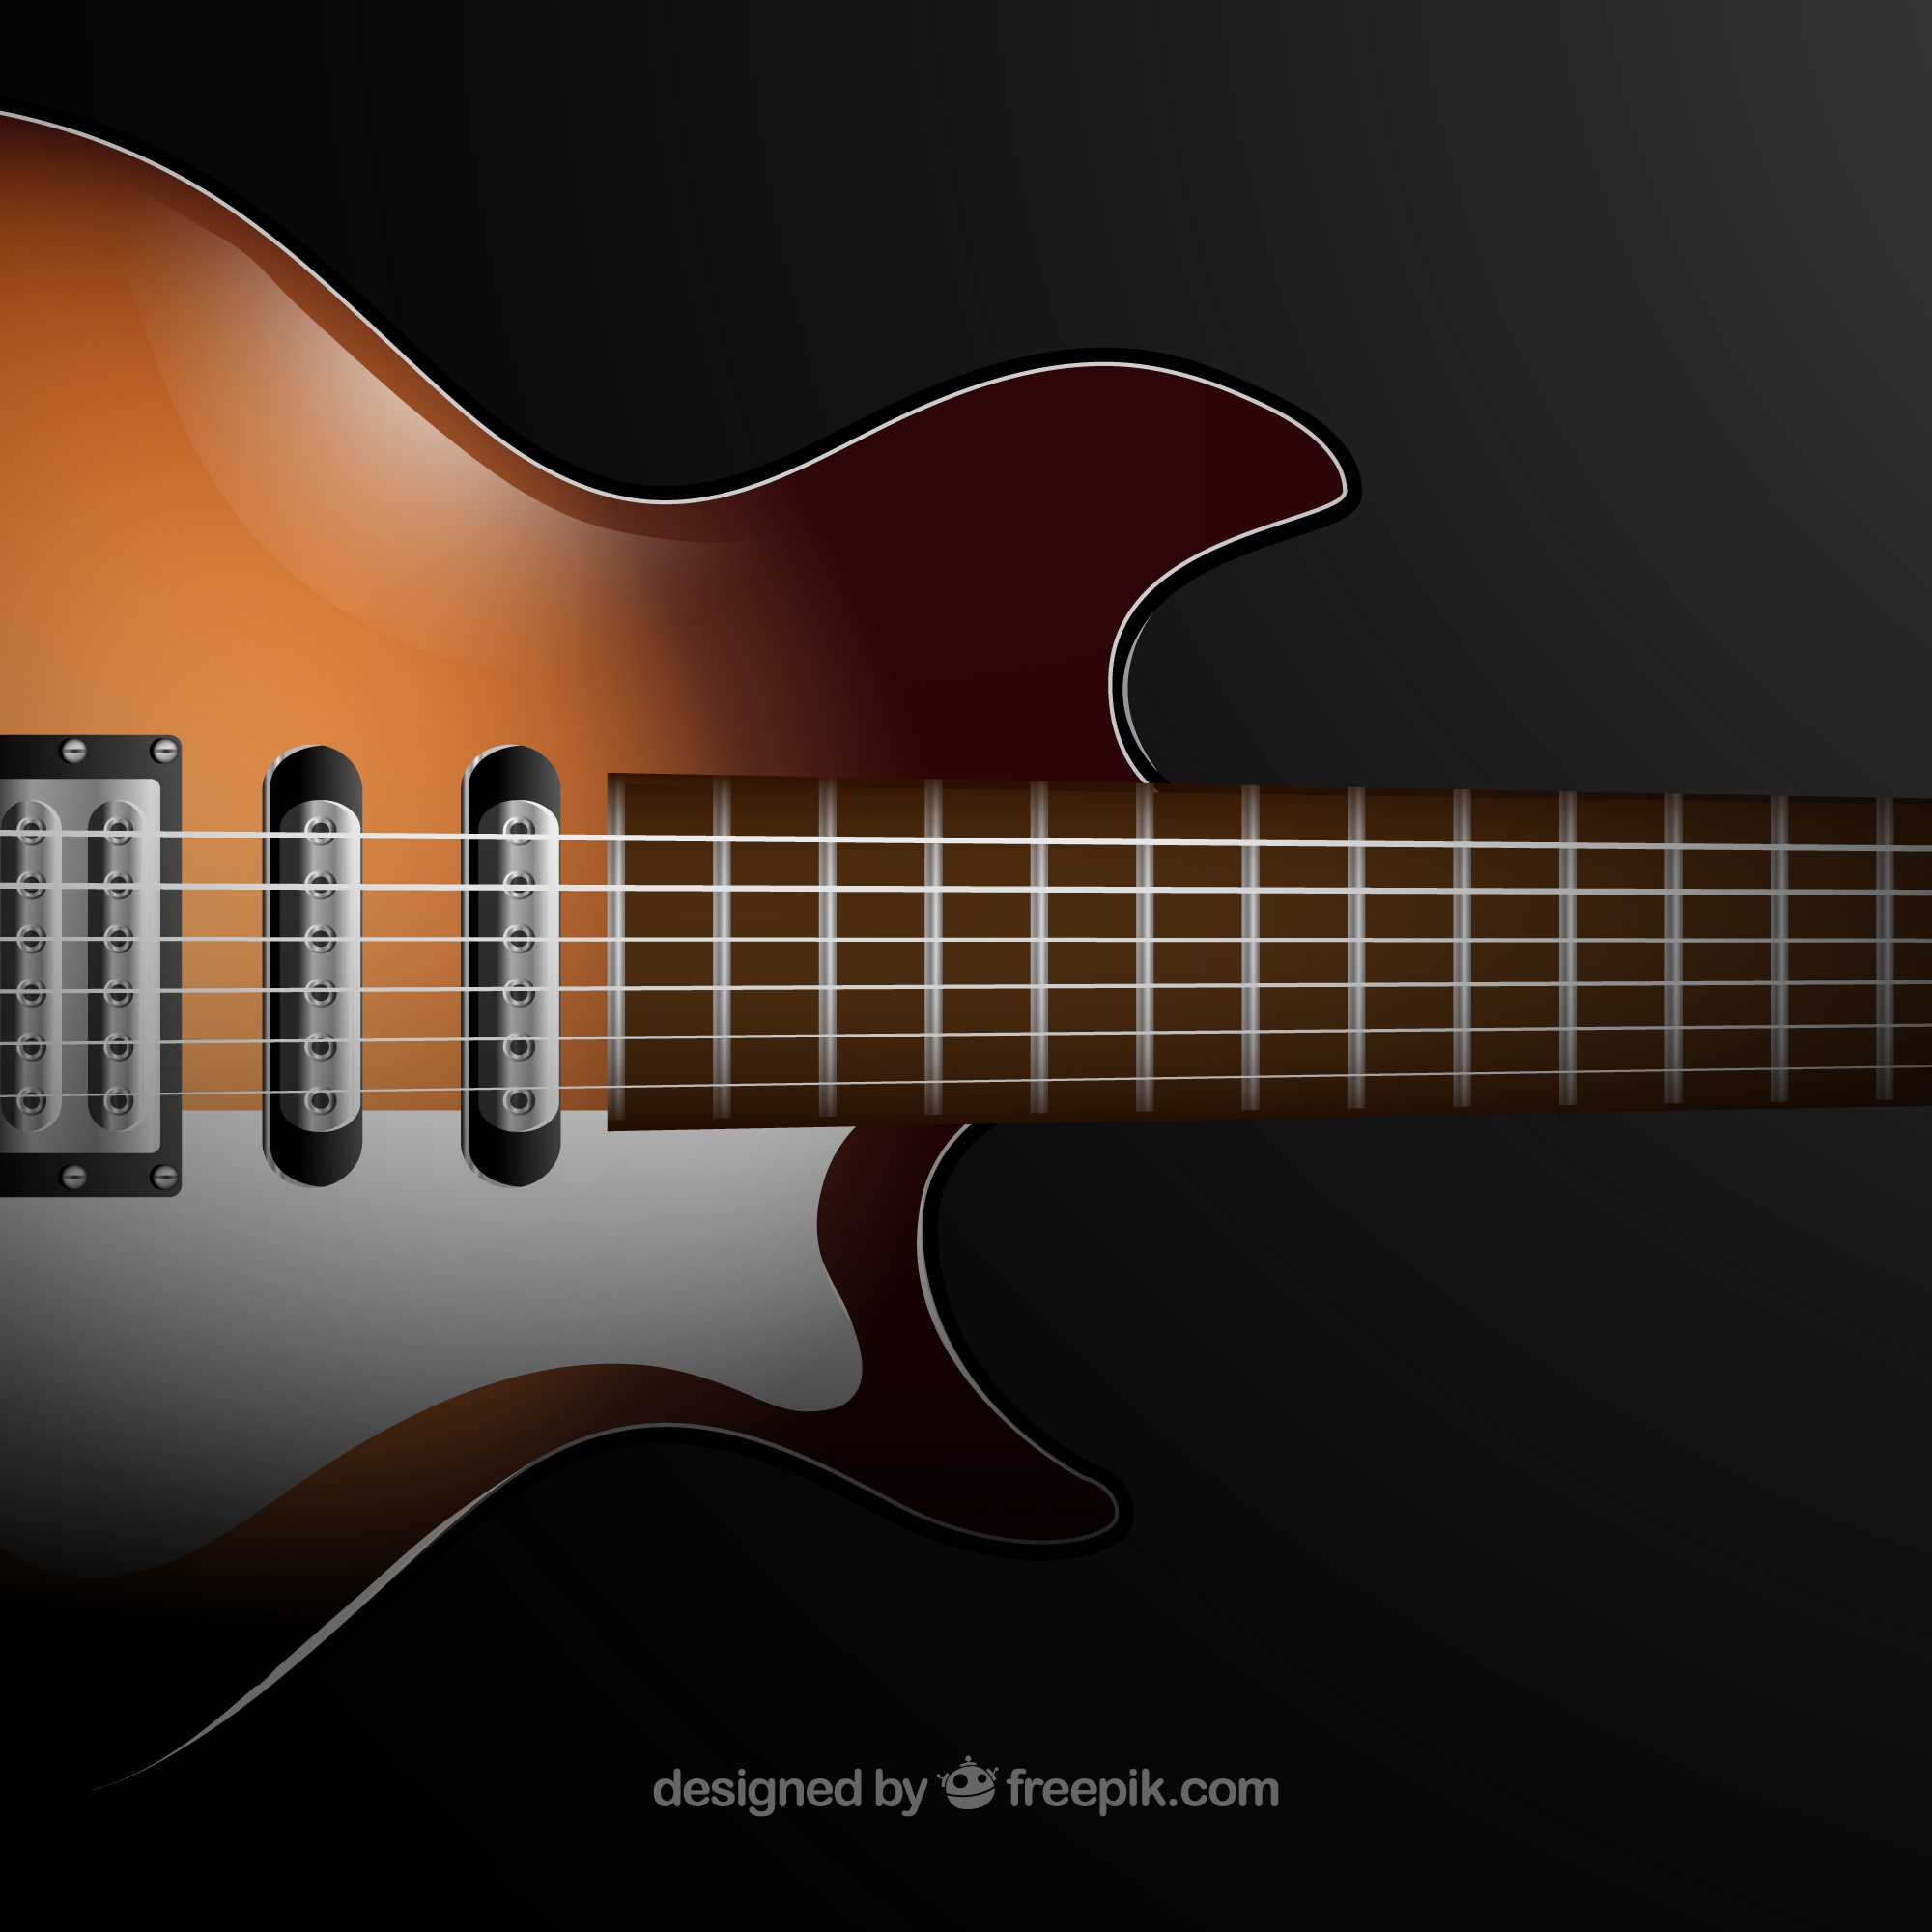 Realistic background of electric guitar